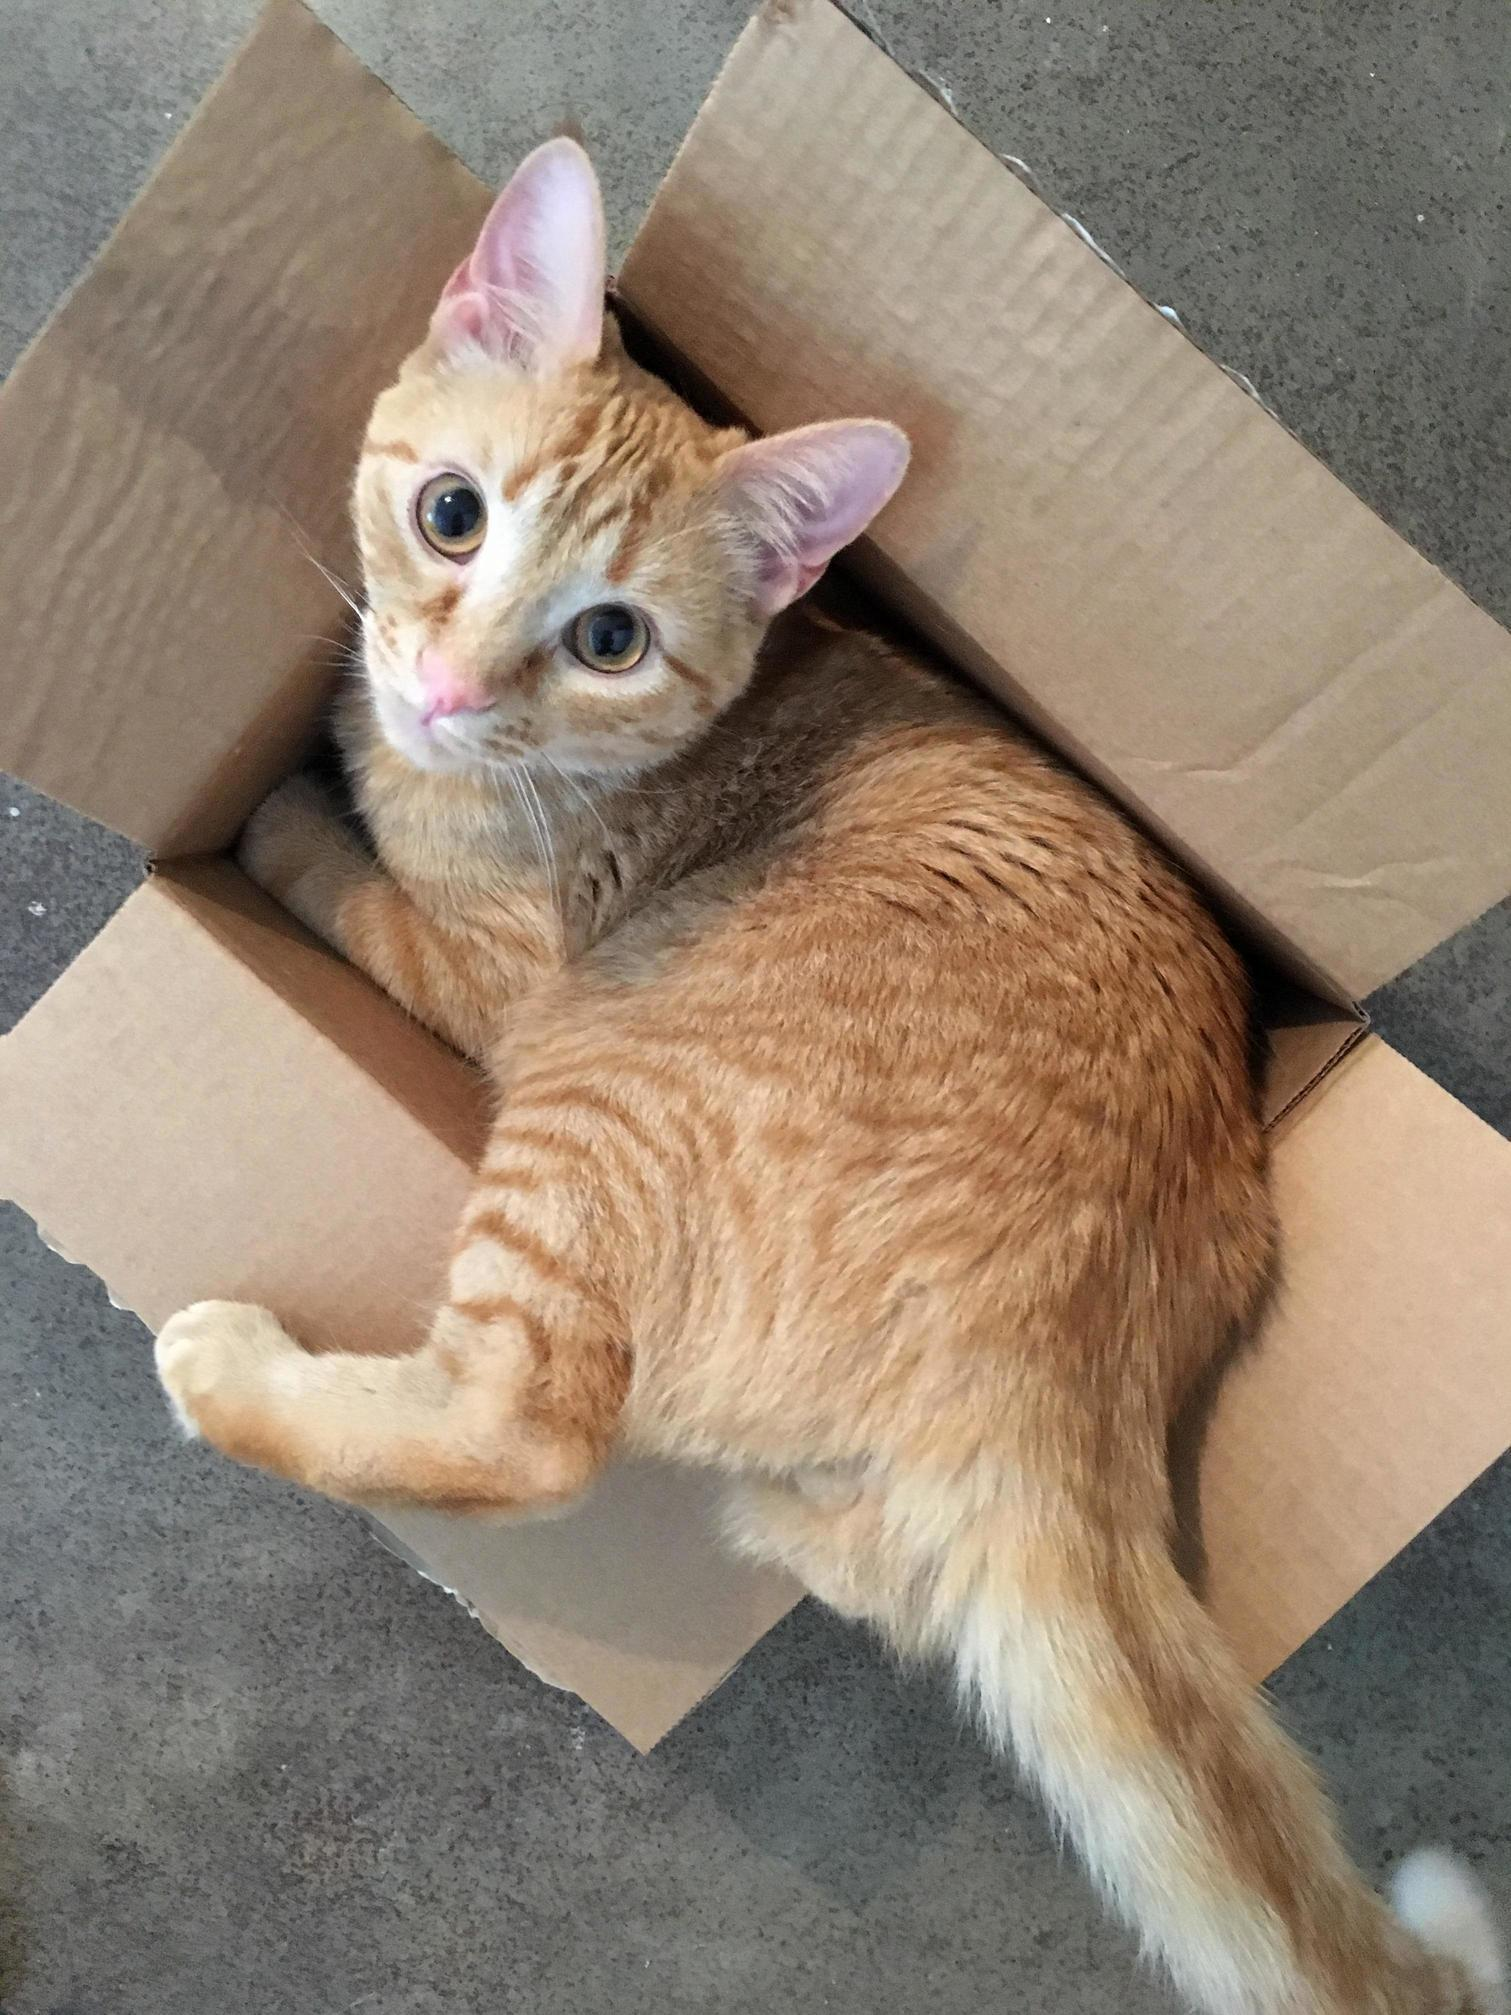 What no, i havent been eating too many treats! this box was always a little snug!